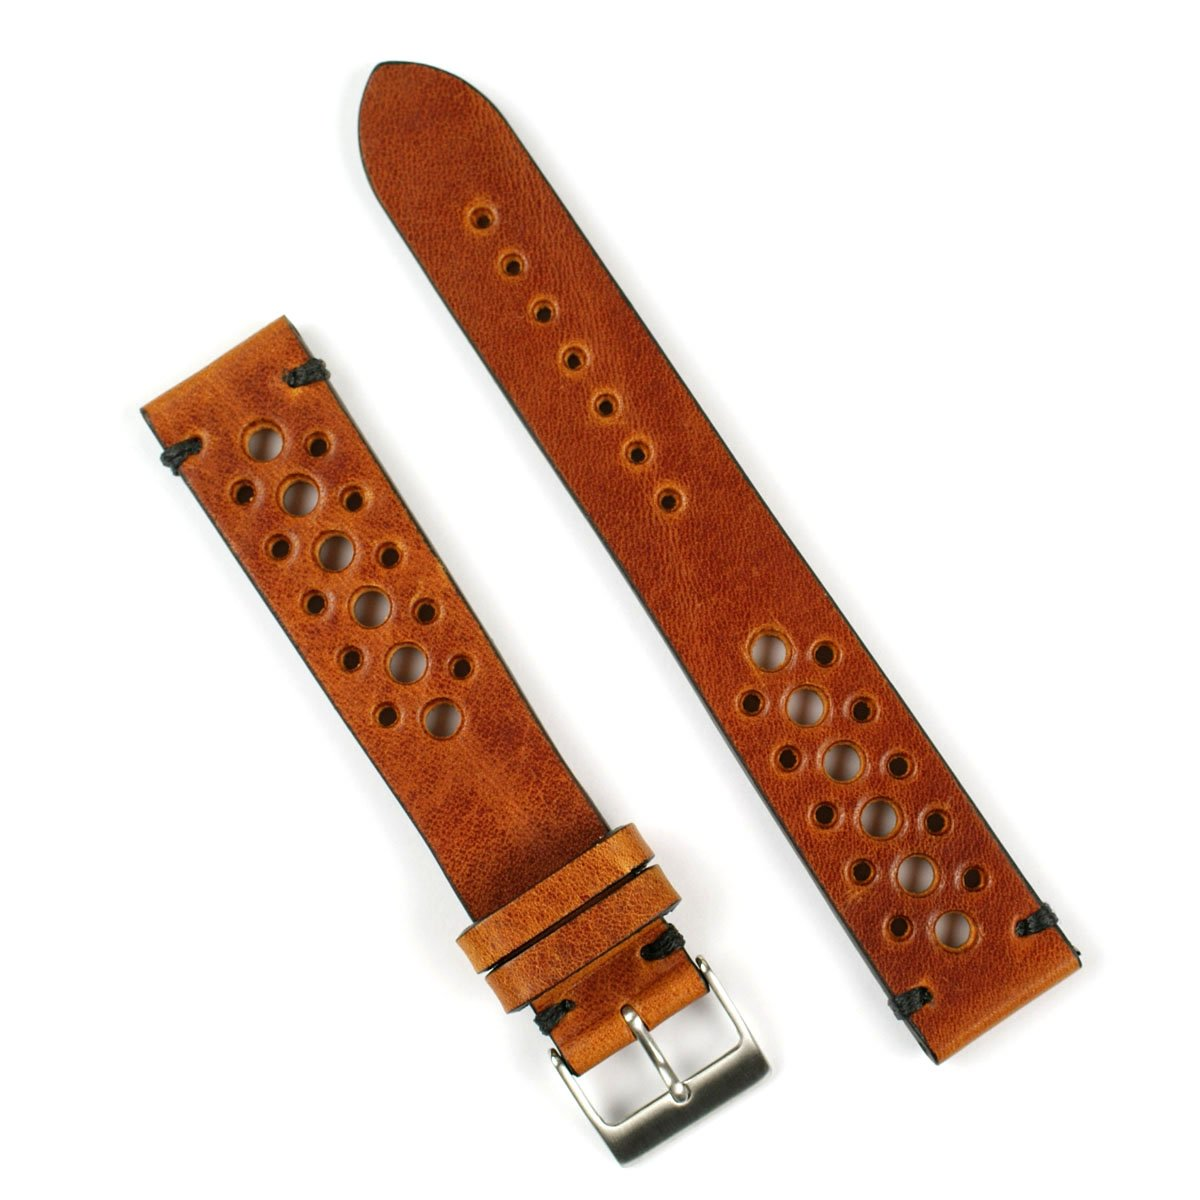 B & R Bands 20mm Cognac Classic Vintage Racing Watch Band Strap - Large Length